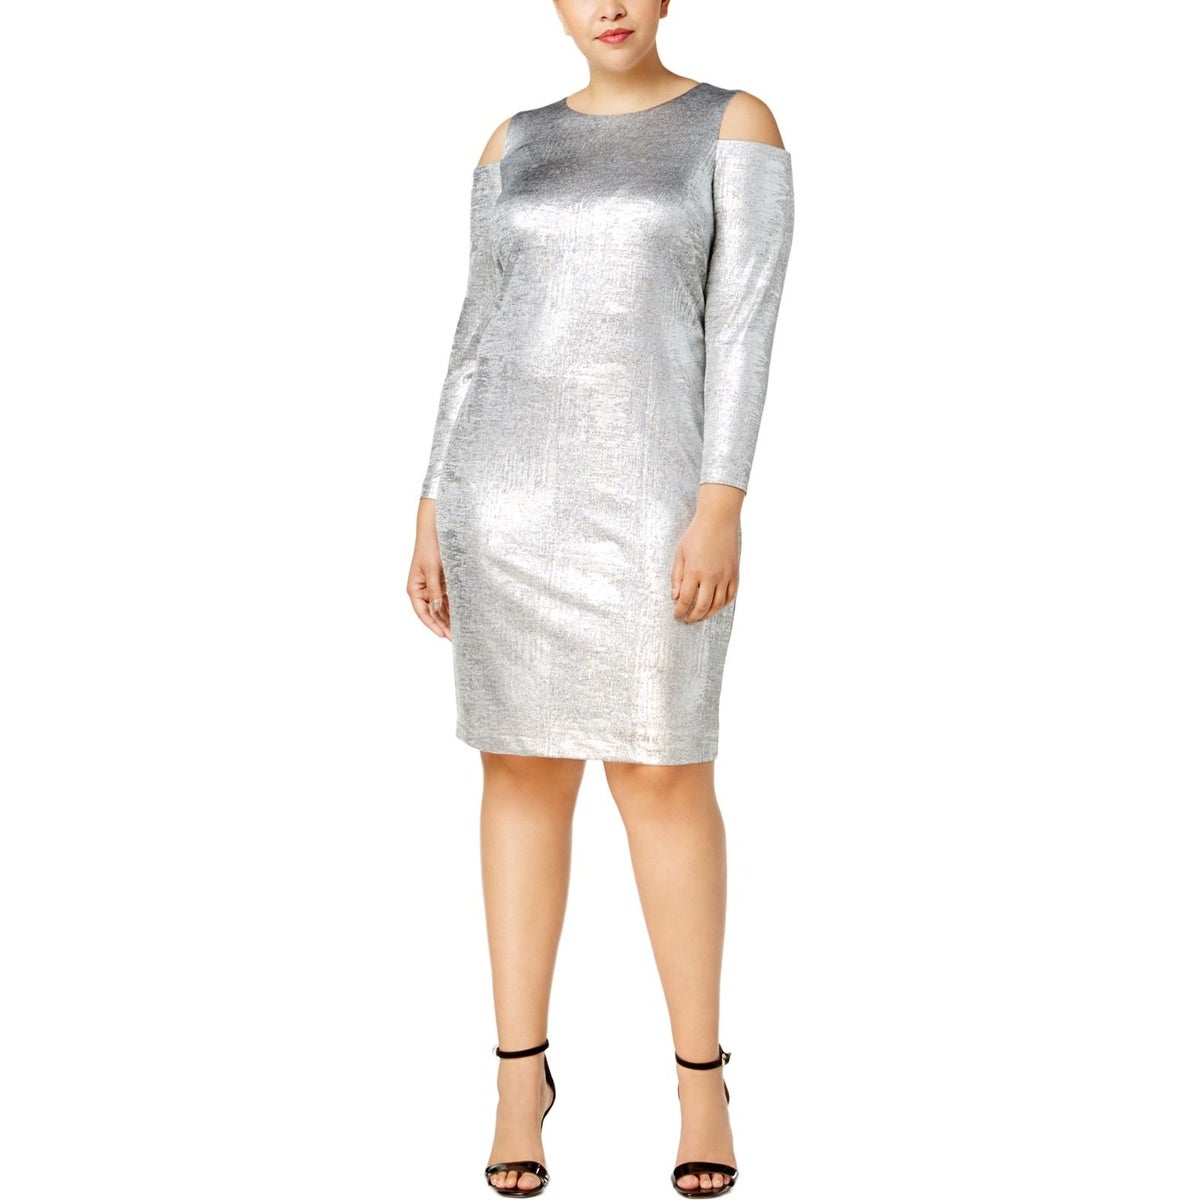 0a3eeb1ccd83 Calvin Klein Women's Plus-Size Clothing | Find Great Women's Clothing Deals  Shopping at Overstock